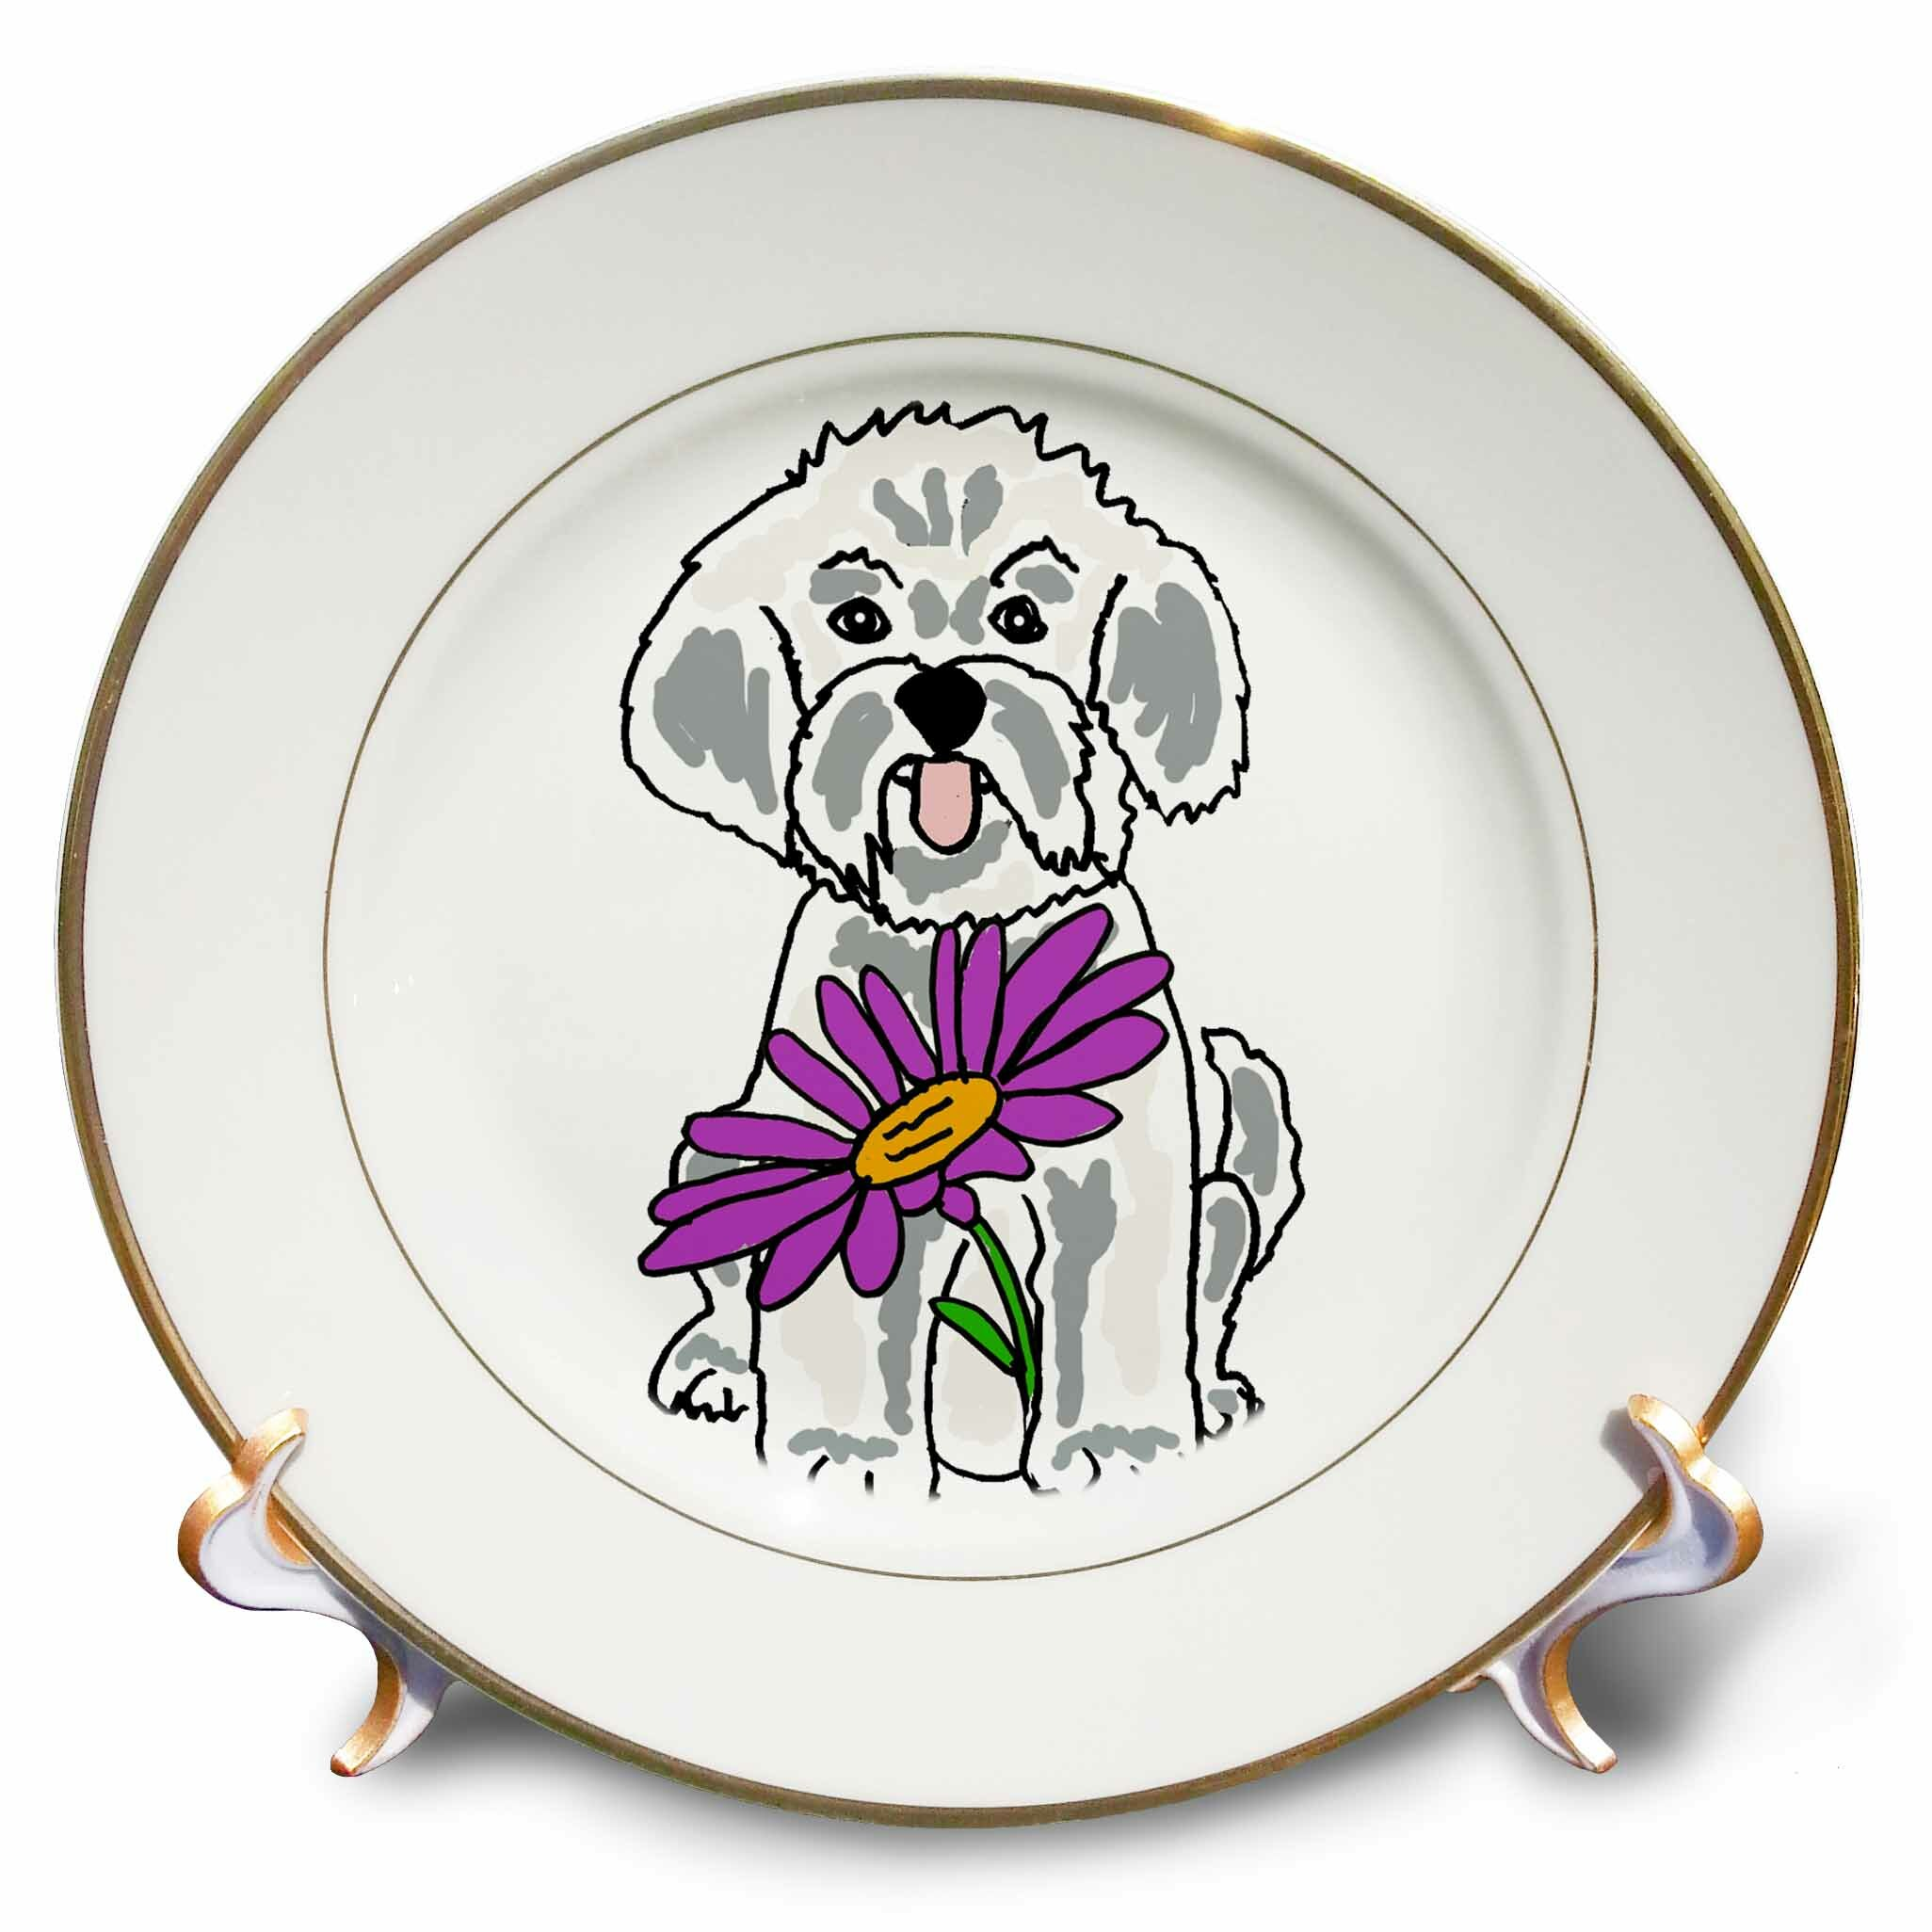 East Urban Home Funny Cool Bichon Frise Puppy Dog With Daisy Flower Porcelain Decorative Plate Wayfair